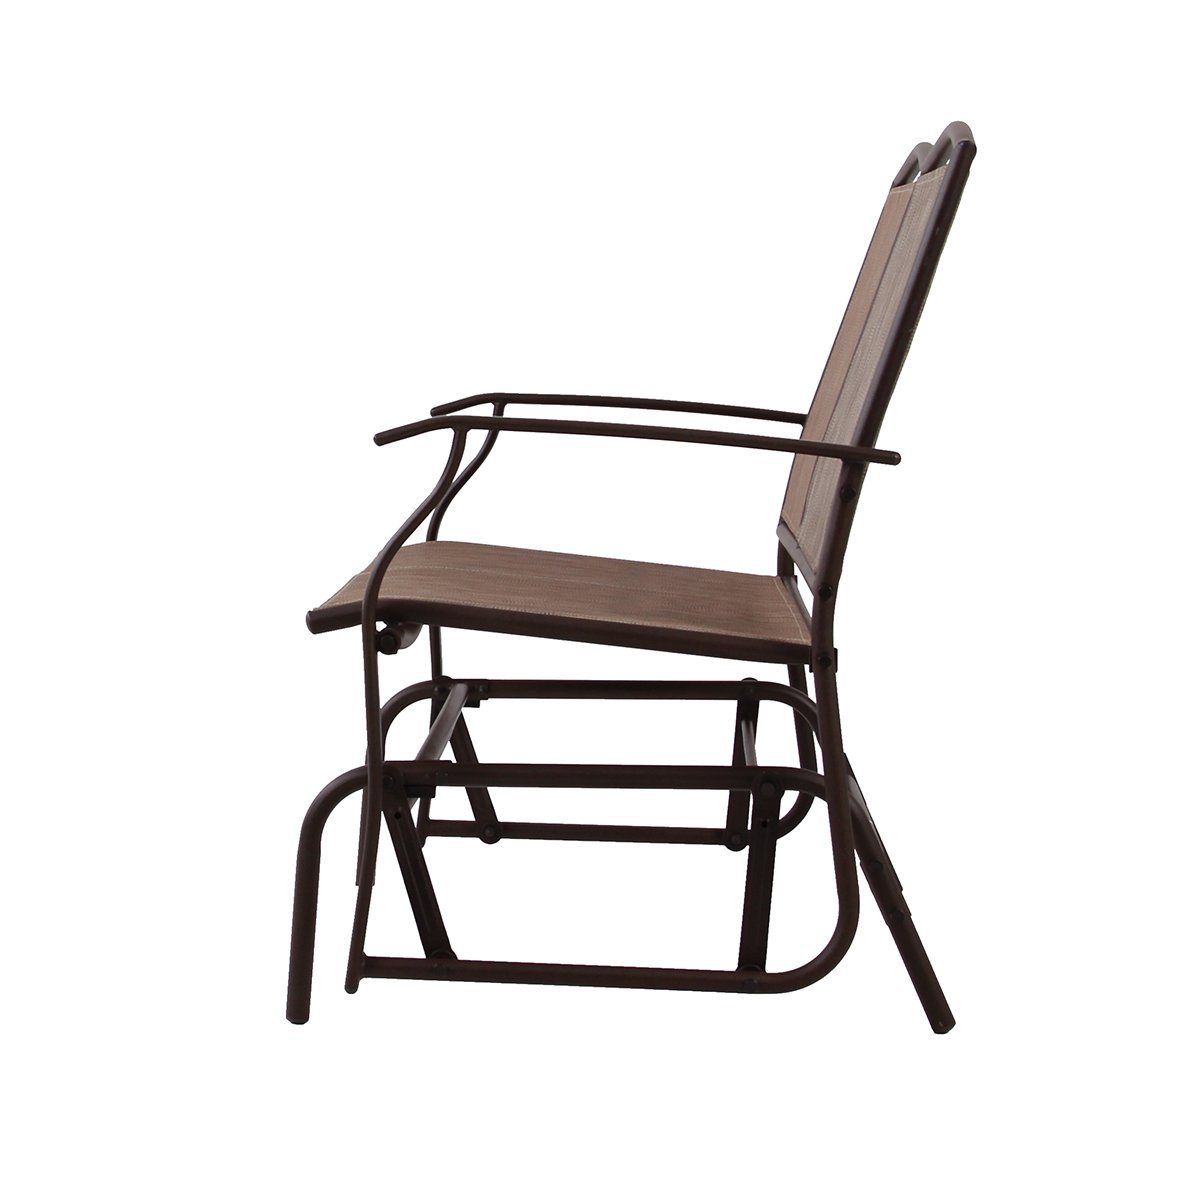 phi villa patio swing glider bench for 2 persons rocking chair